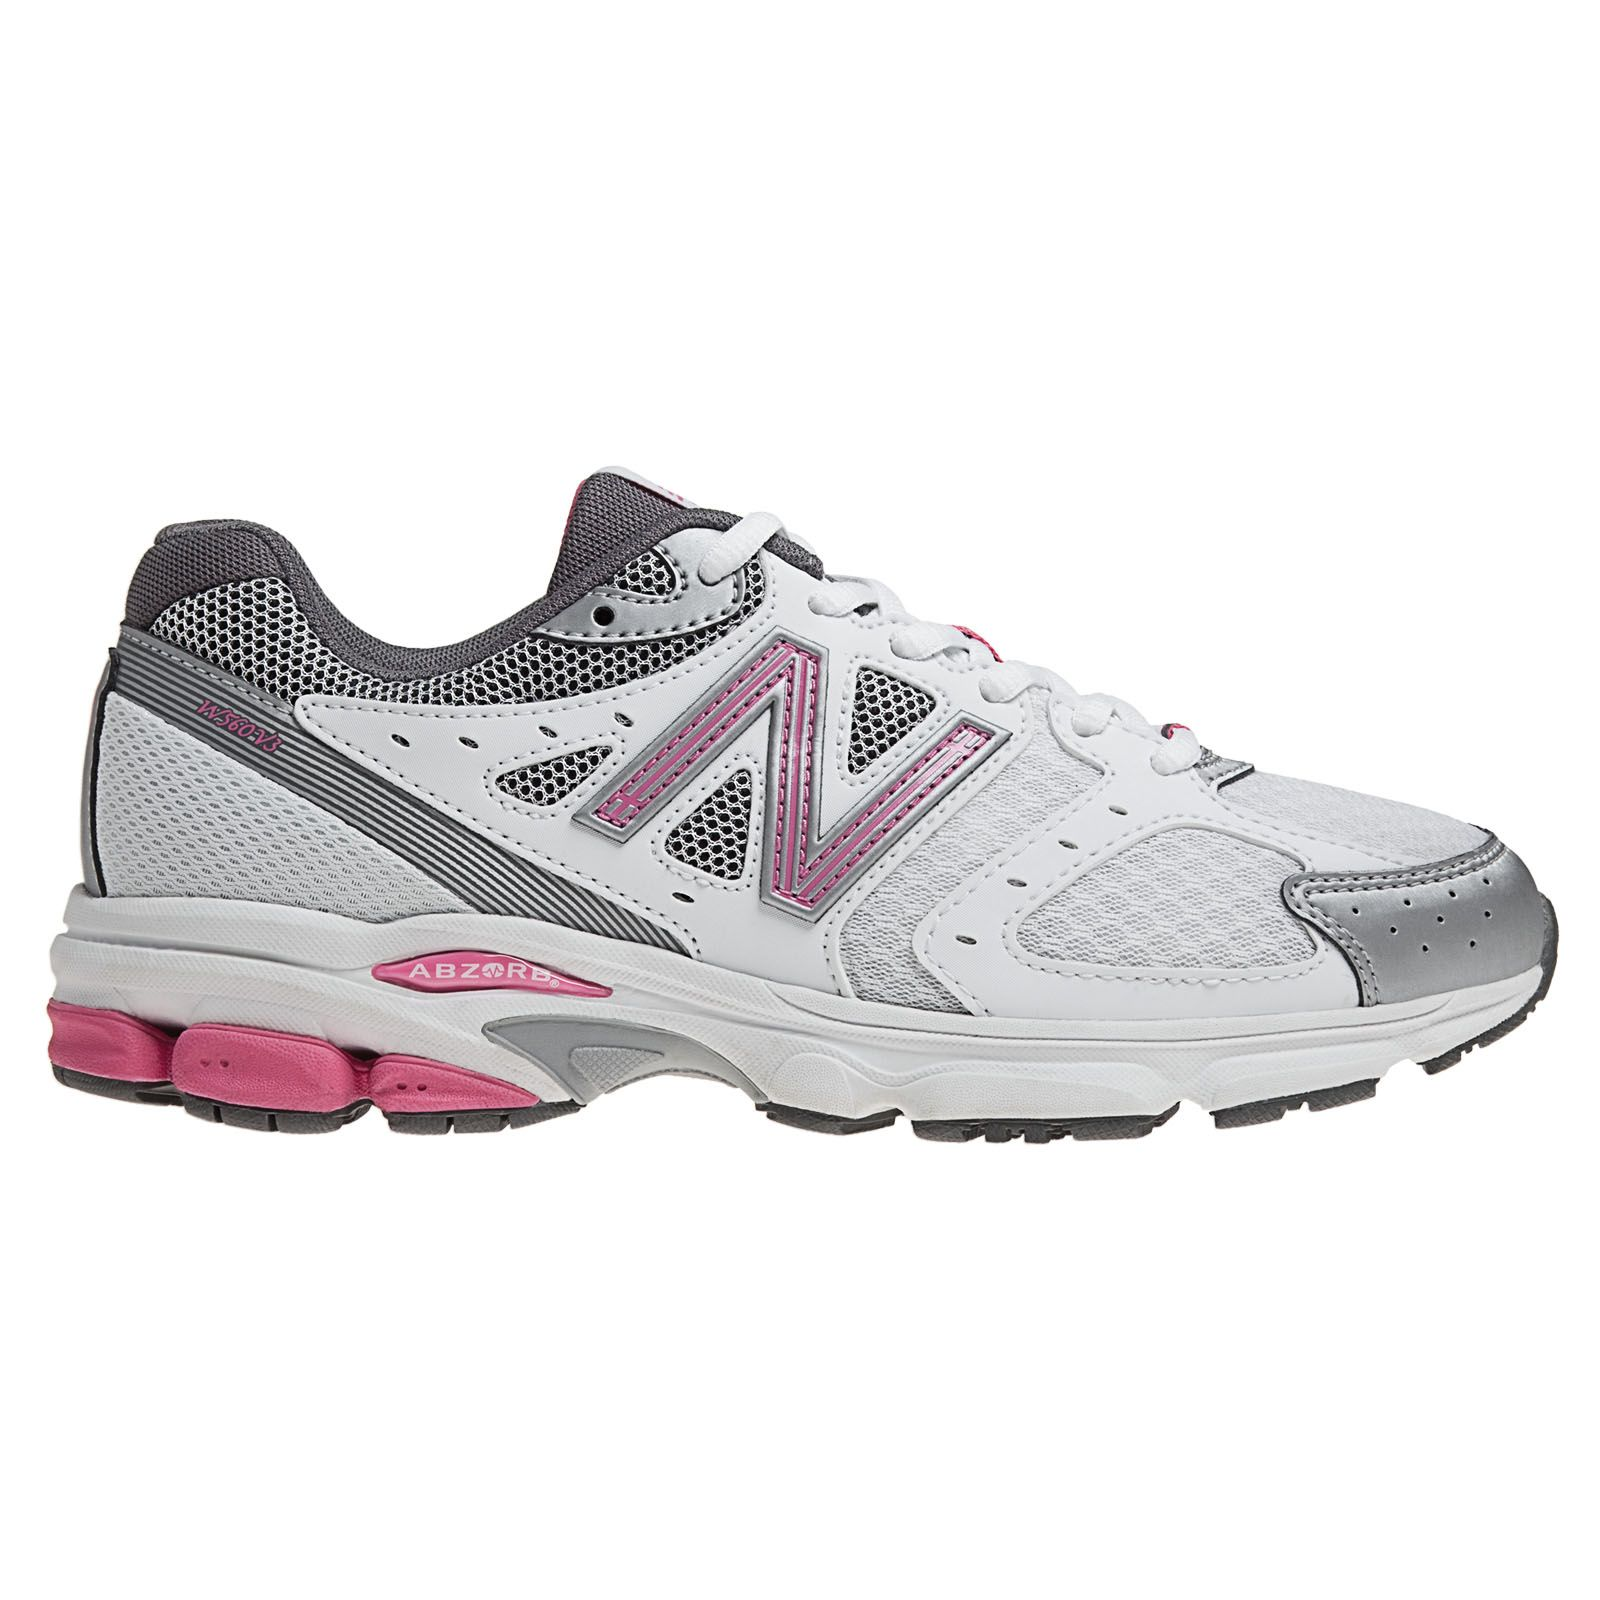 New Balance Running Shoes Size Guide